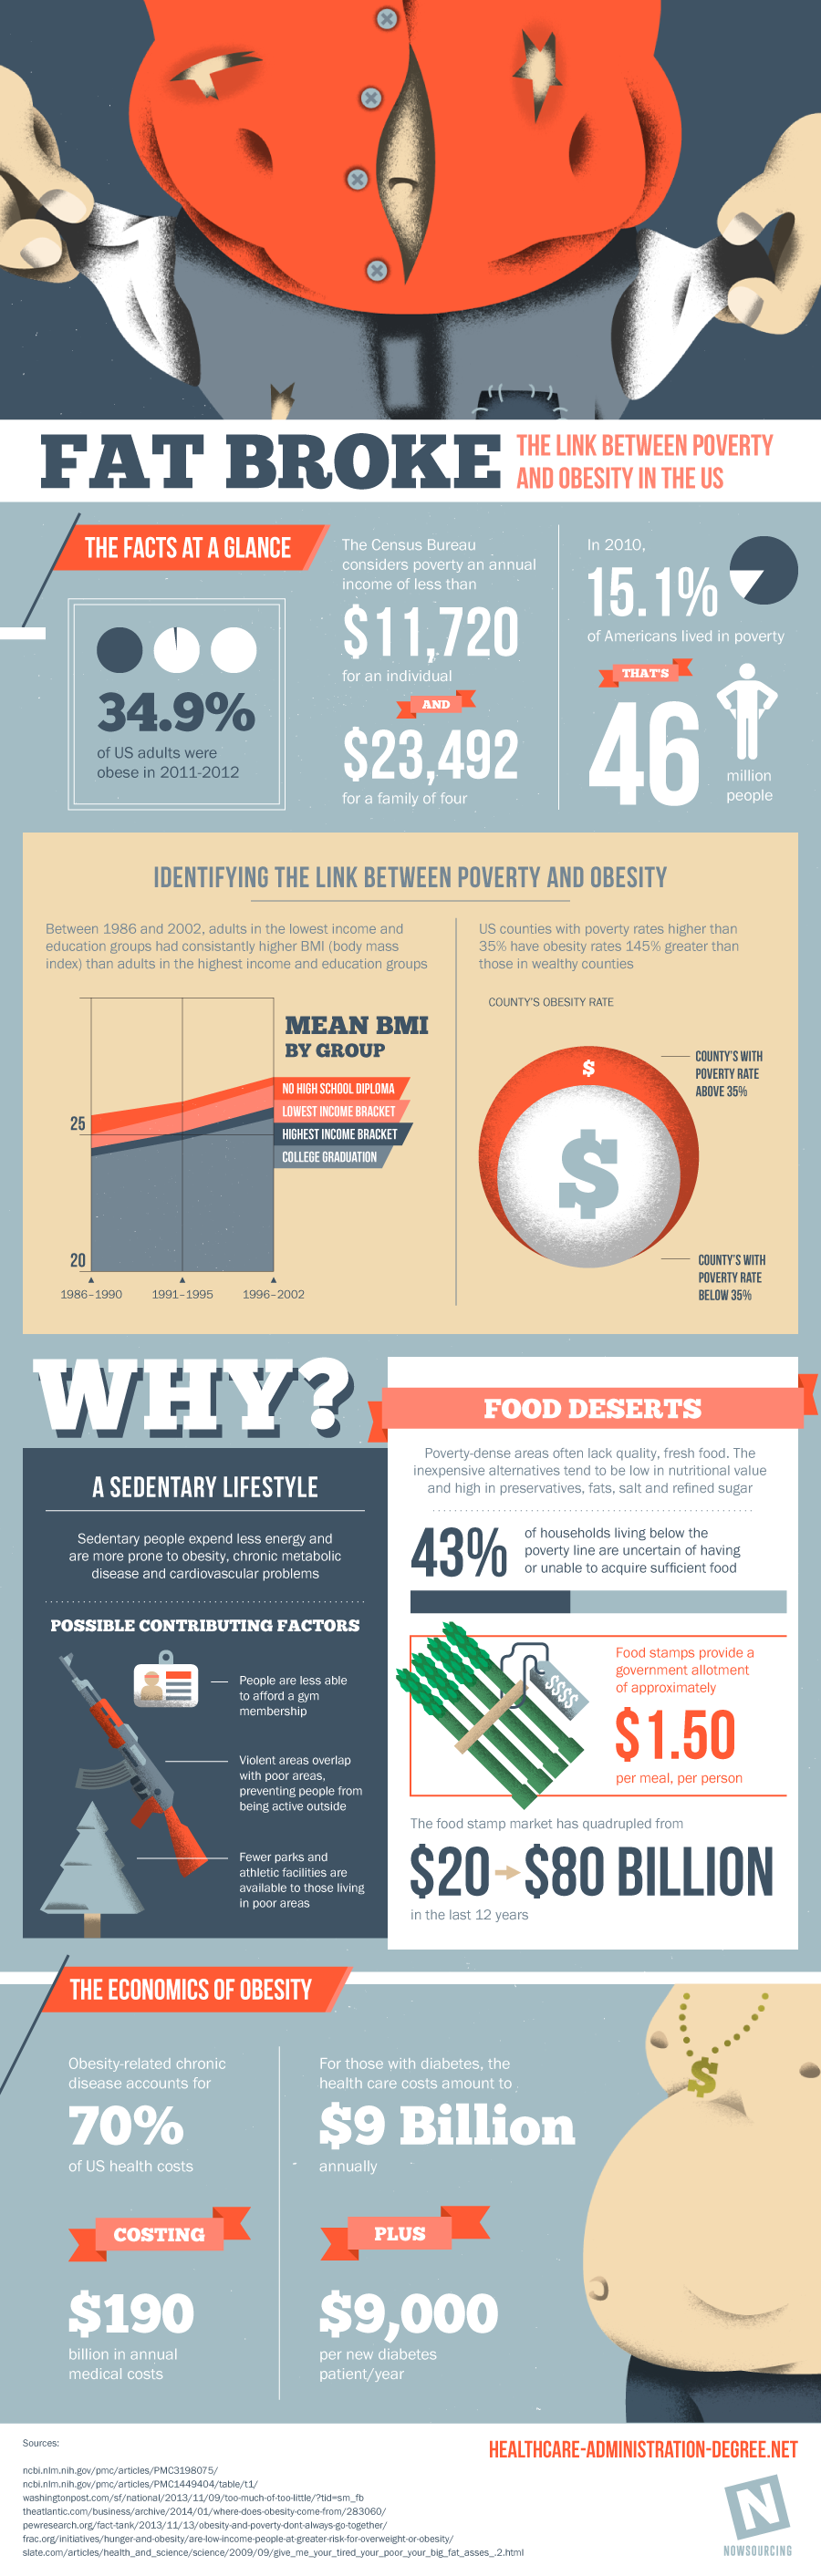 Fat Broke: The Link Between Poverty and Obesity in the U.S.